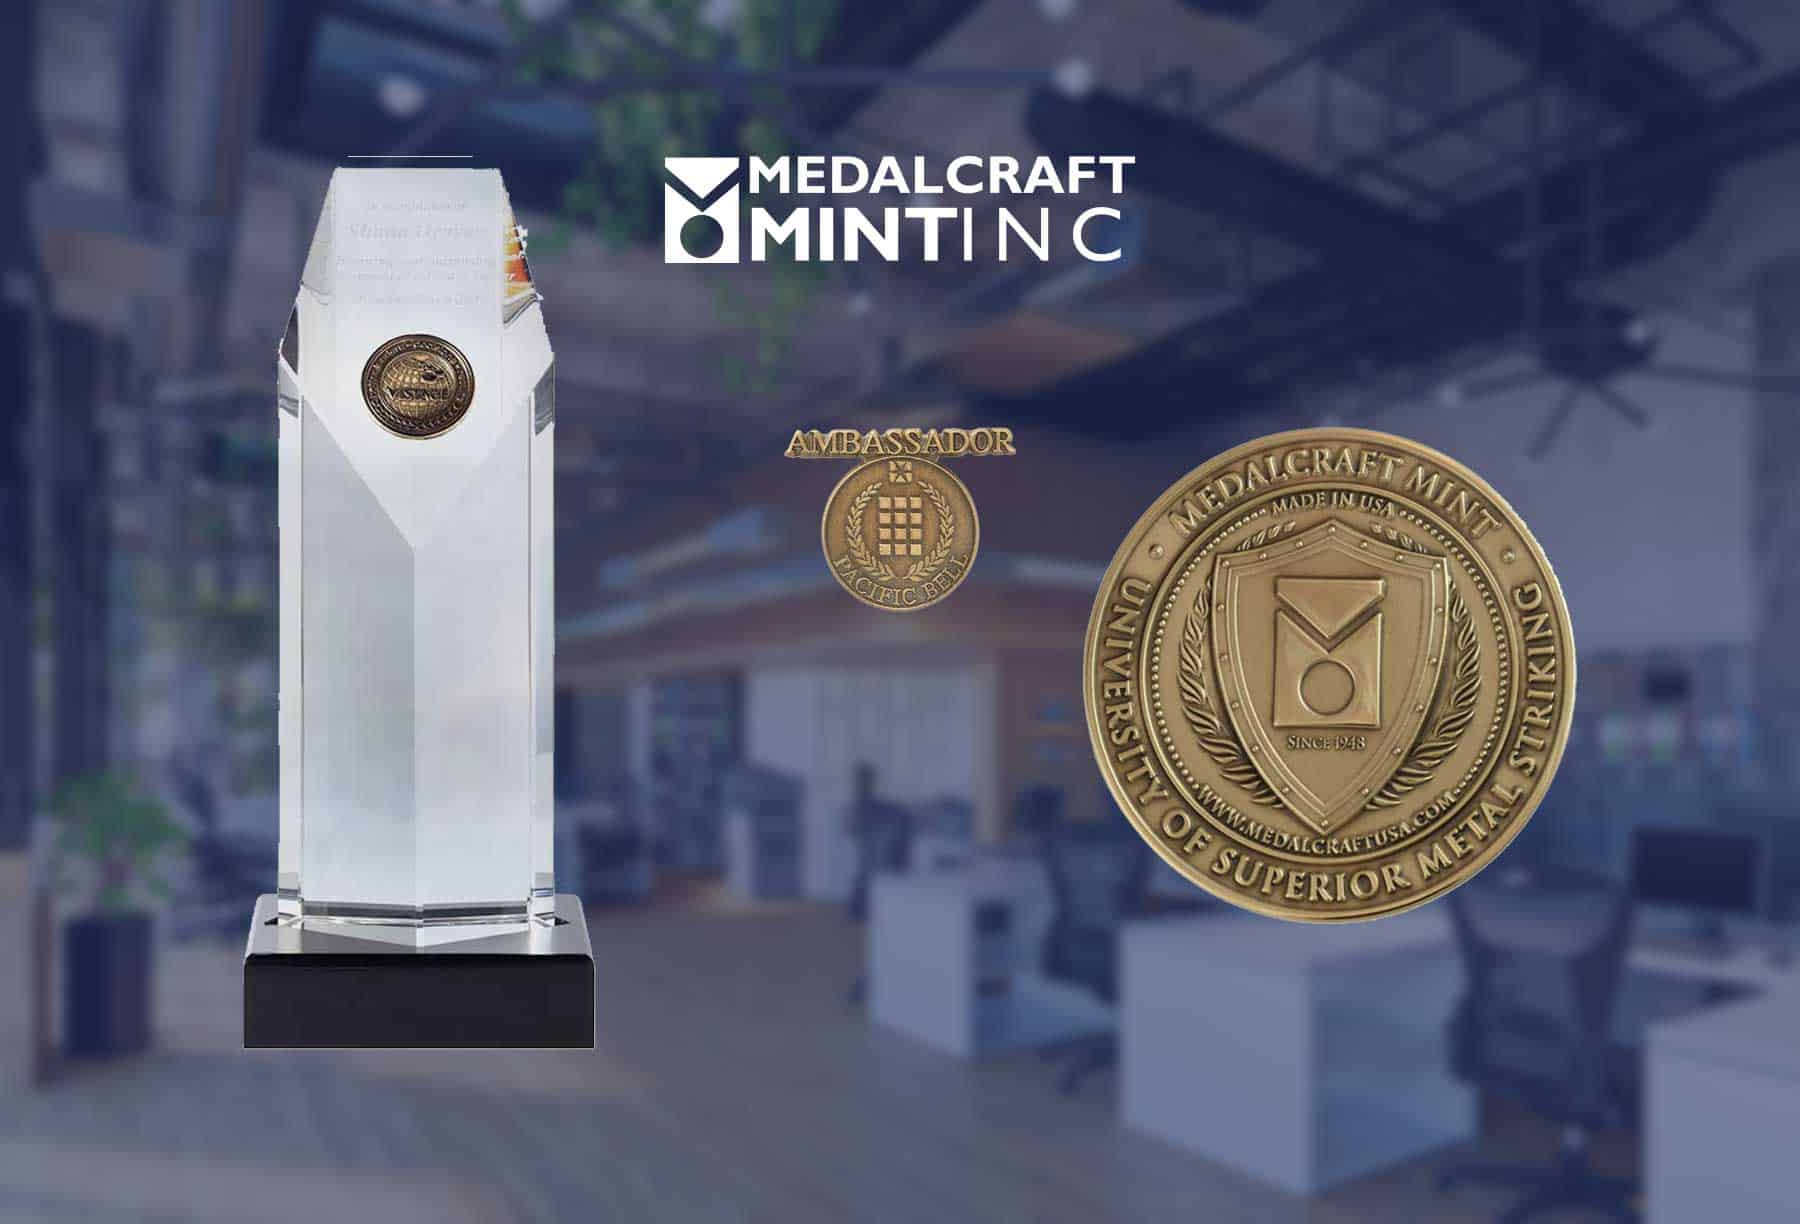 Spice up your employee recognition awards with Medalcraft quality